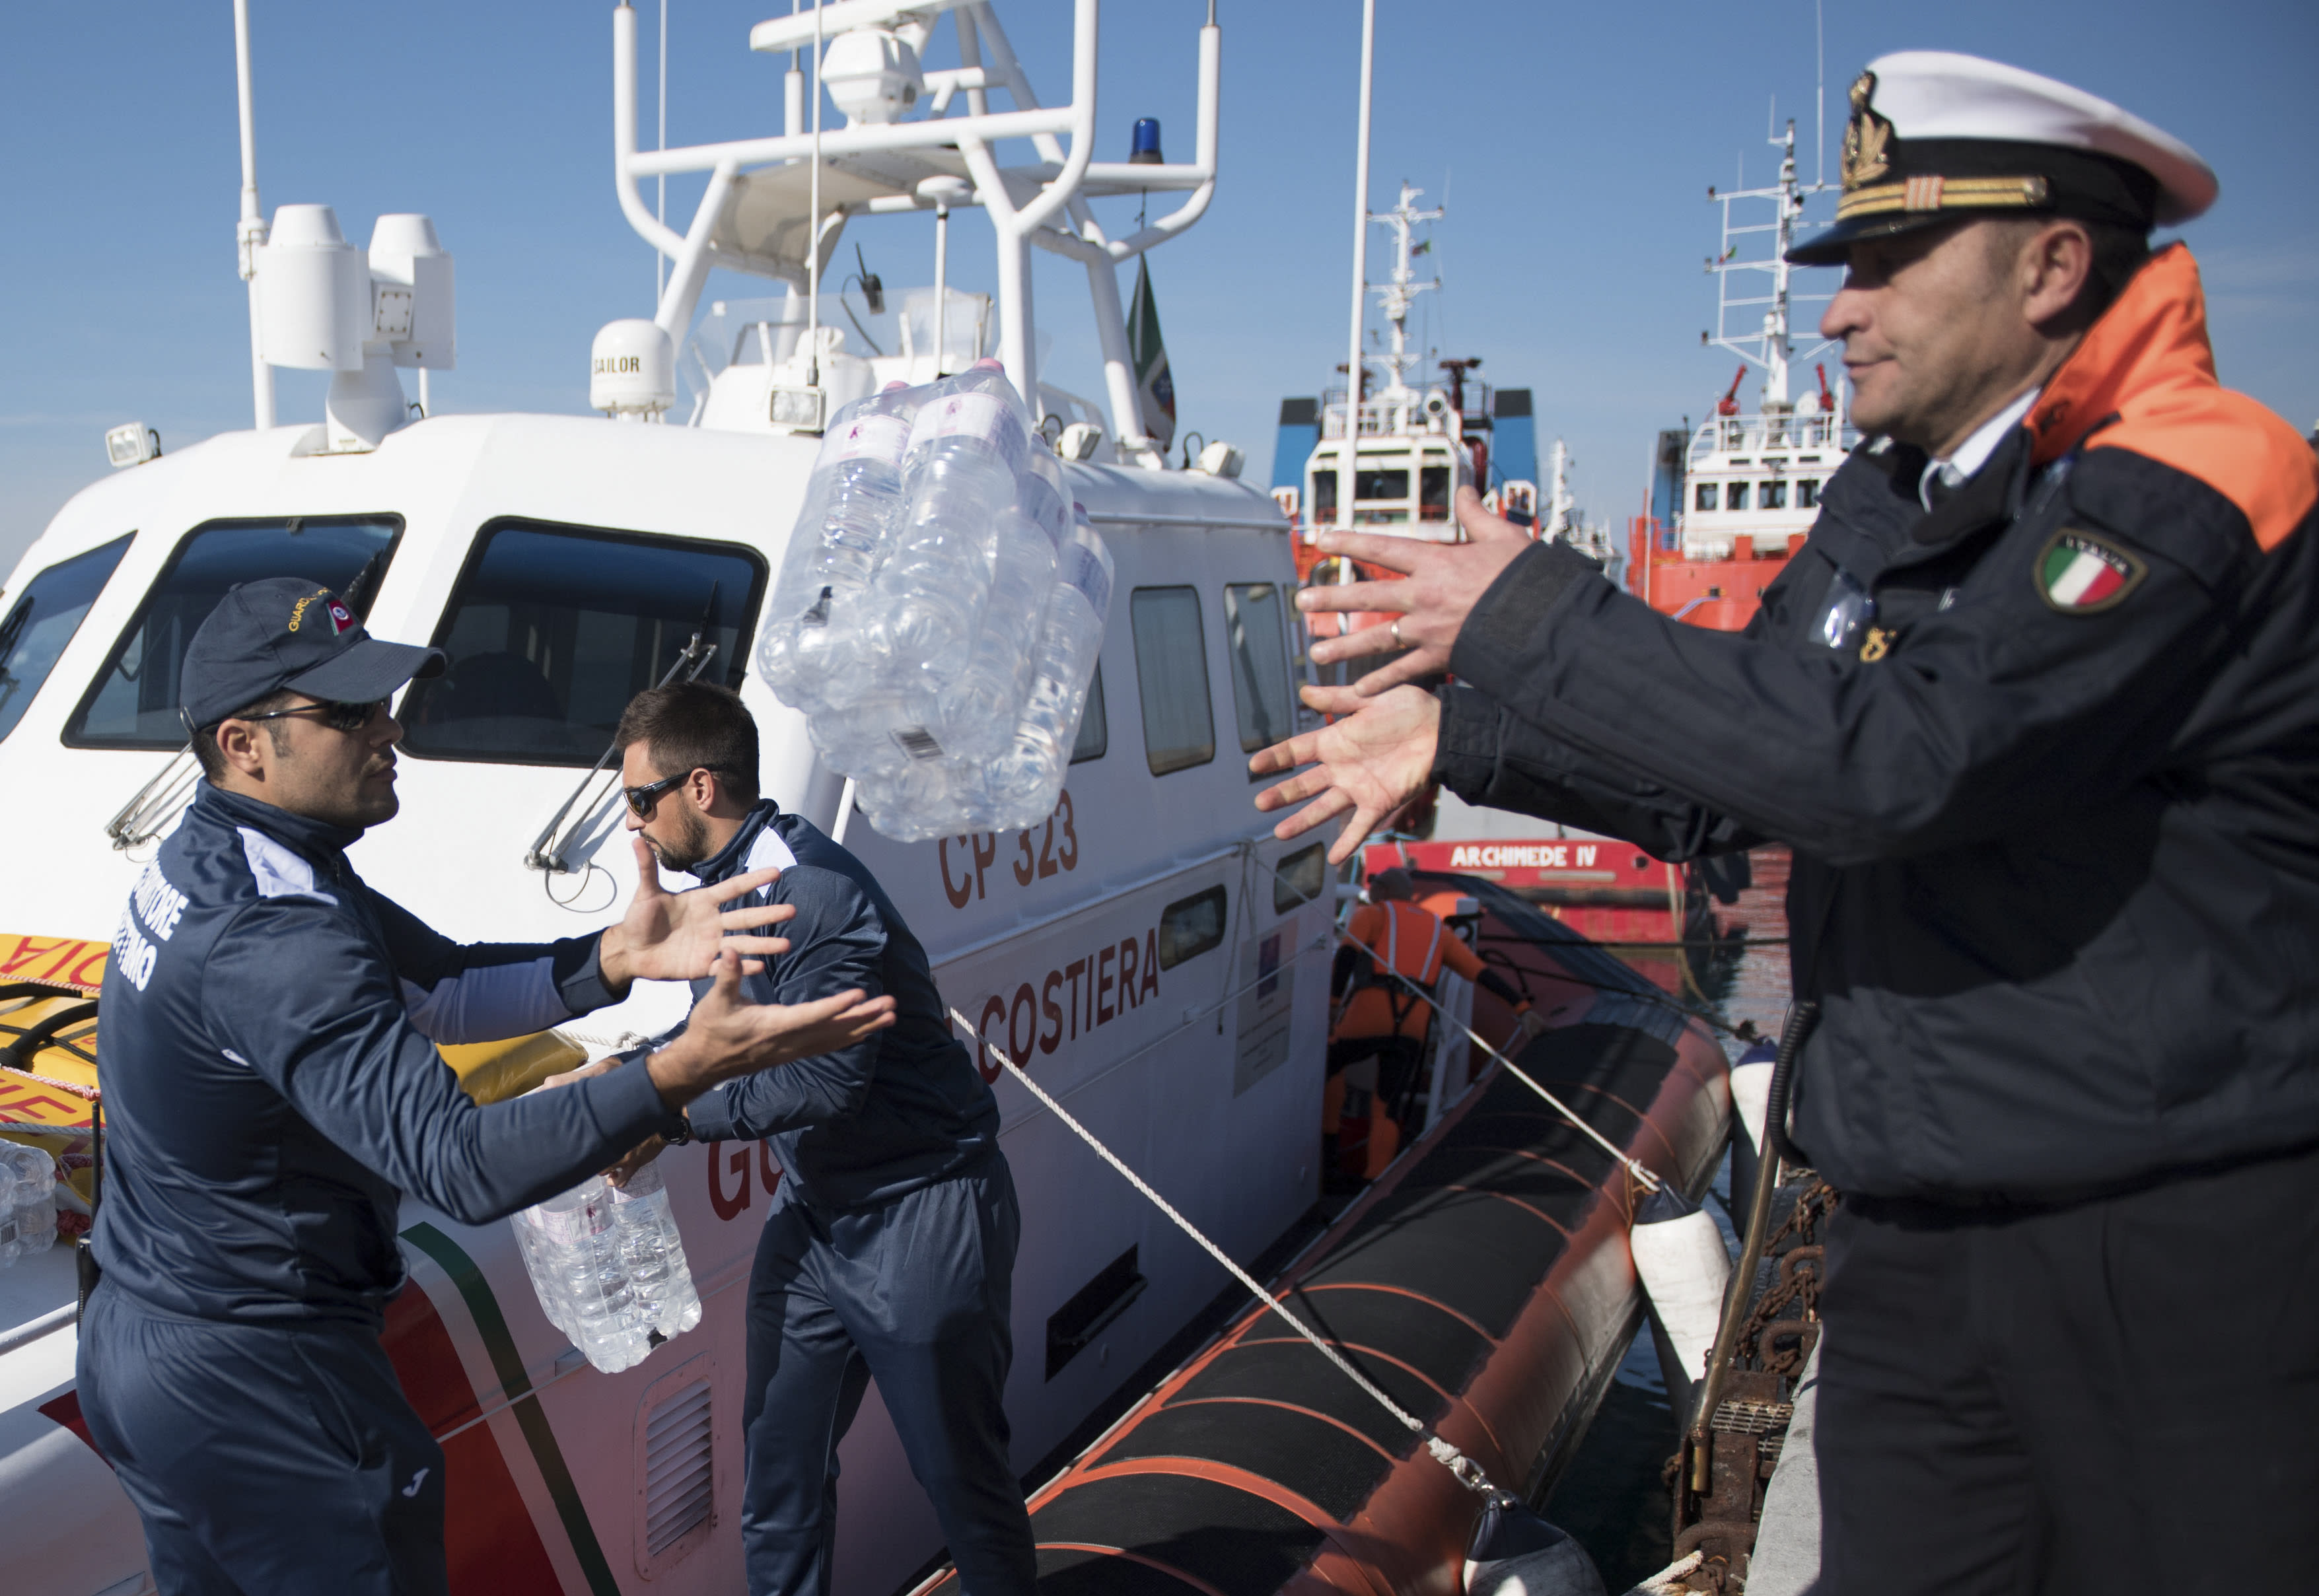 Water is unloaded from a coastguard boat to the German humanitarian group's rescue boat Sea Watch 3, as food and blankets for the cold were delivered, off the coast of Syracuse, Italy, Sunday, Jan. 27, 2019. The Italian coast guard is bringing socks, shoes, bread and fruit to 47 migrants who have been stranded at sea for nine days aboard a German ship. (AP Photo/Salvatore Cavalli)